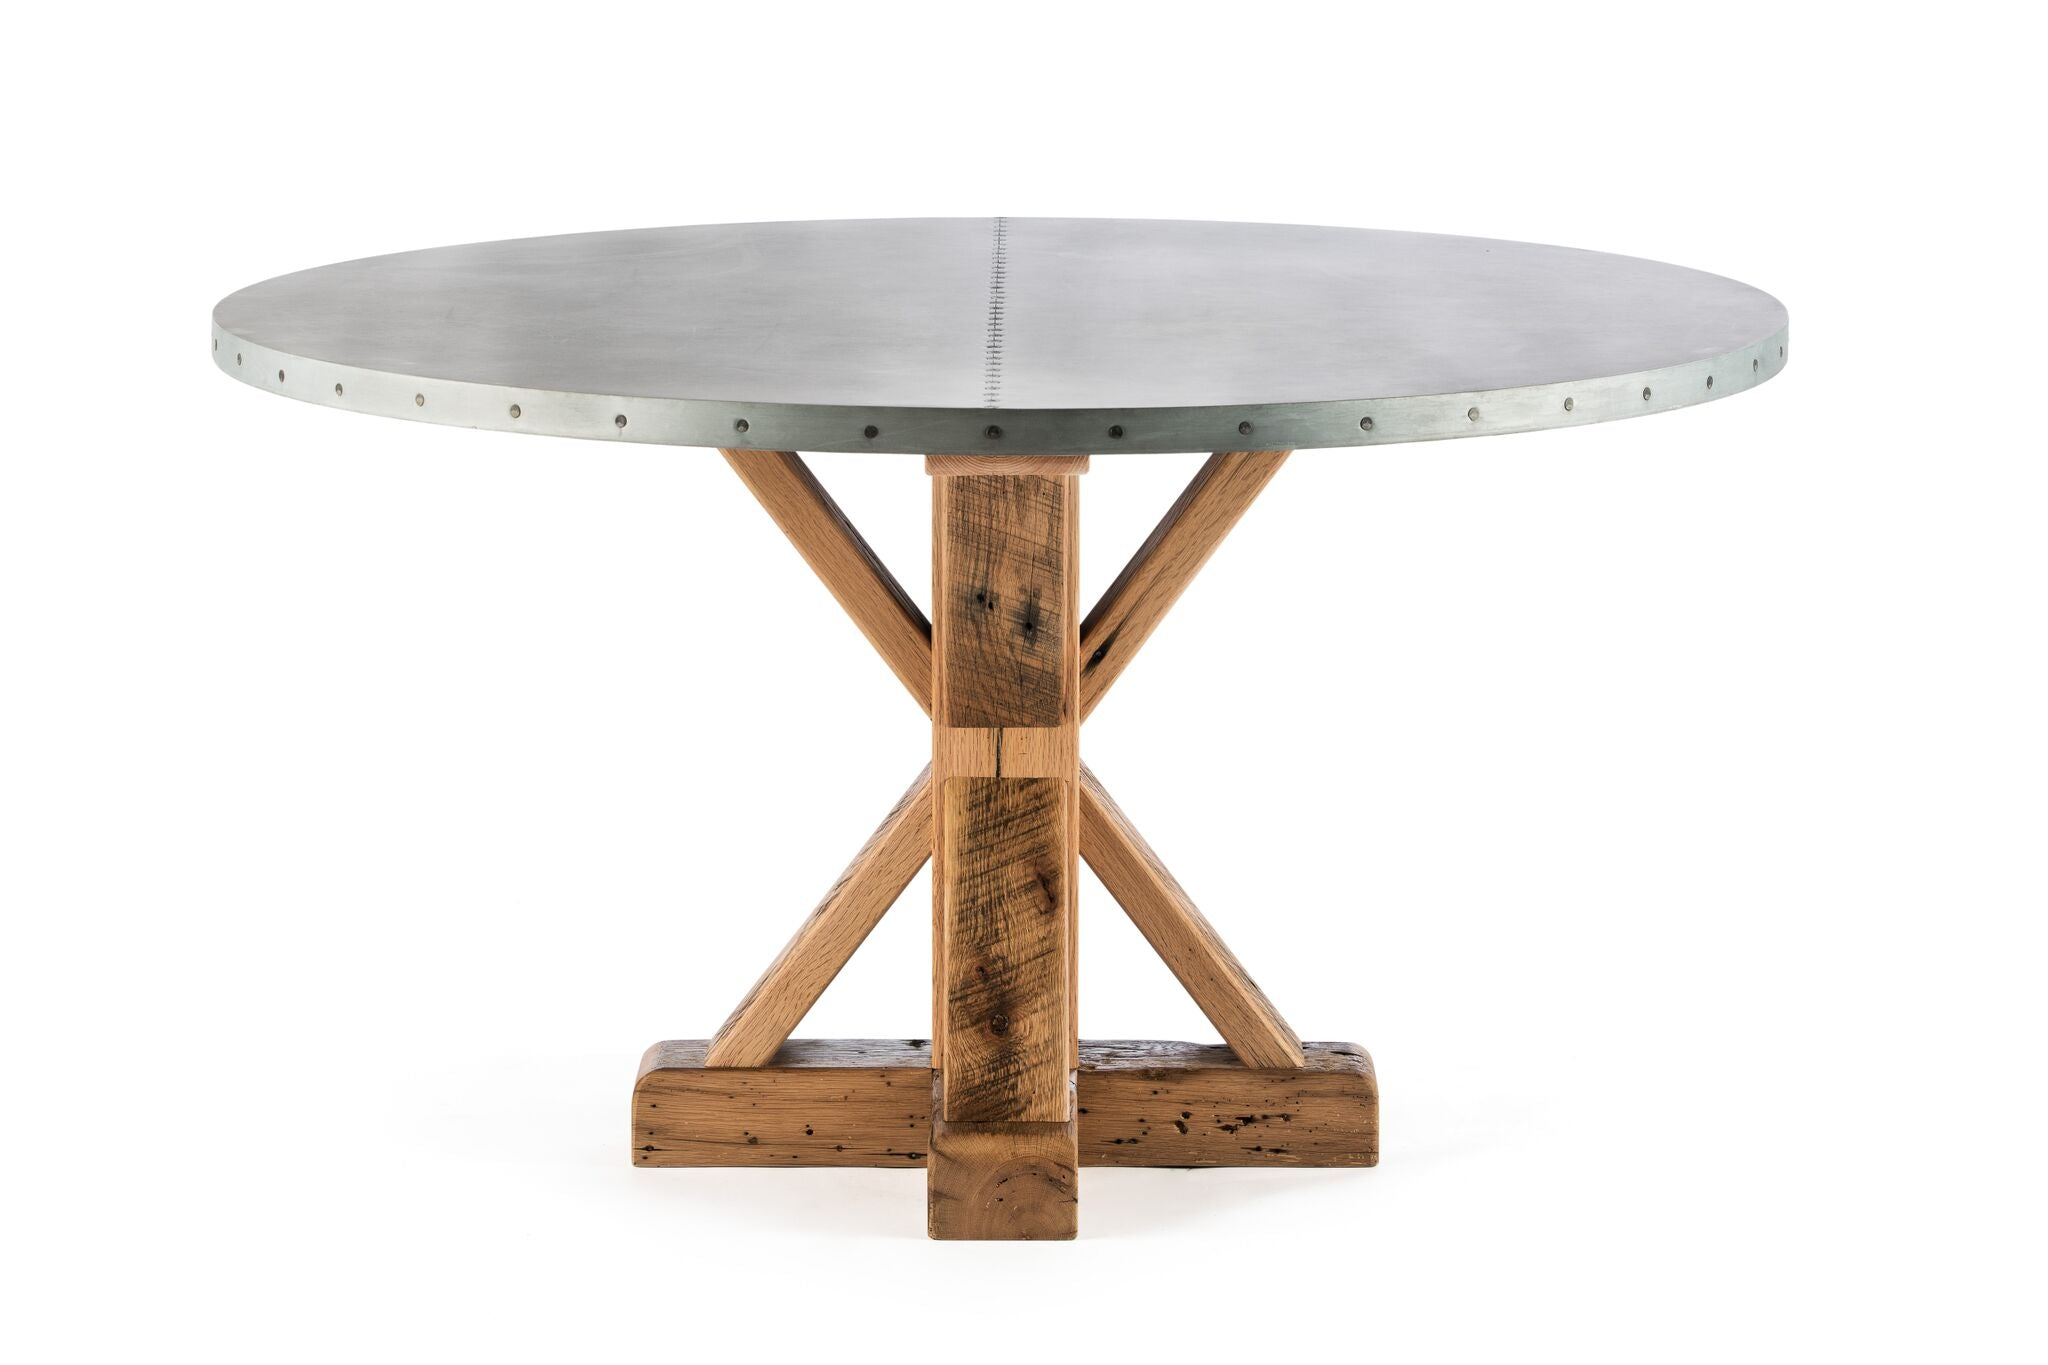 "Zinc Round Tables | French Trestle Table | CLASSIC | Americana on Reclaimed Oak | CUSTOM SIZE D 42 H 29 | 1.5"" Standard 